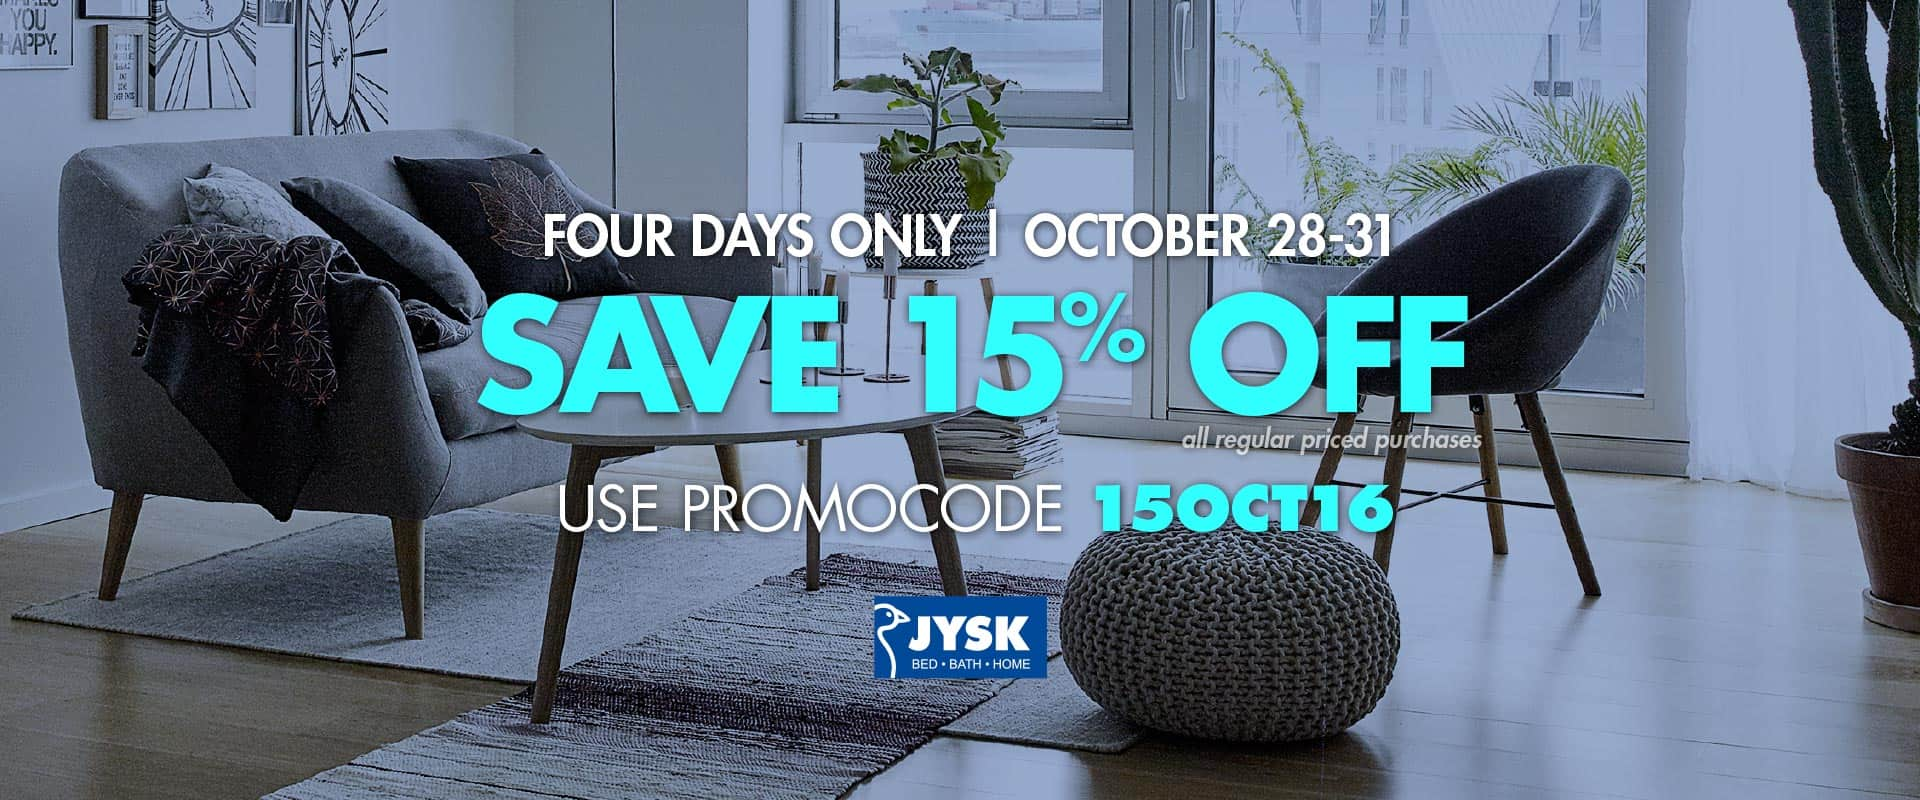 JYSK Flash Sale: Save 15% off All Regular Price Items